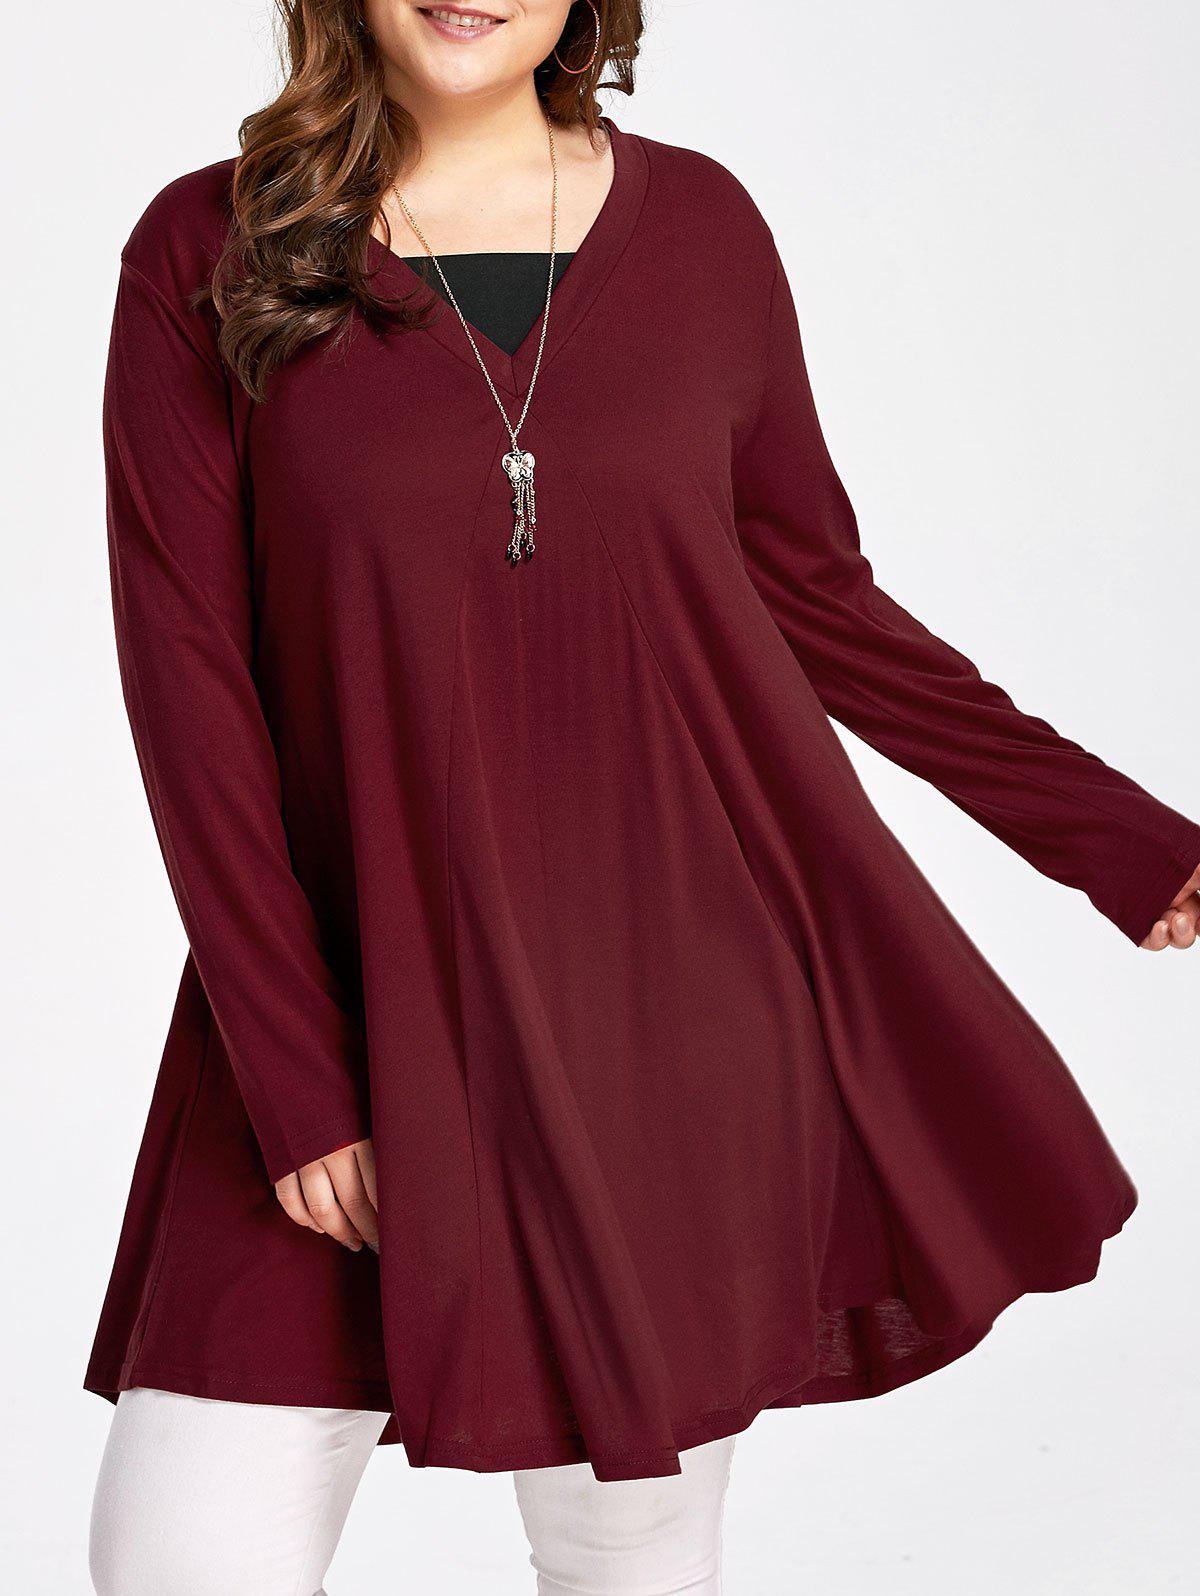 Long Sleeve Plus Size Flowy Swing T-shirtWOMEN<br><br>Size: 4XL; Color: WINE RED; Material: Cotton Blends,Polyester; Shirt Length: Long; Sleeve Length: Full; Collar: Scoop Neck; Style: Fashion; Season: Fall,Spring,Winter; Pattern Type: Others; Weight: 0.3600kg; Package Contents: 1 x Tee;